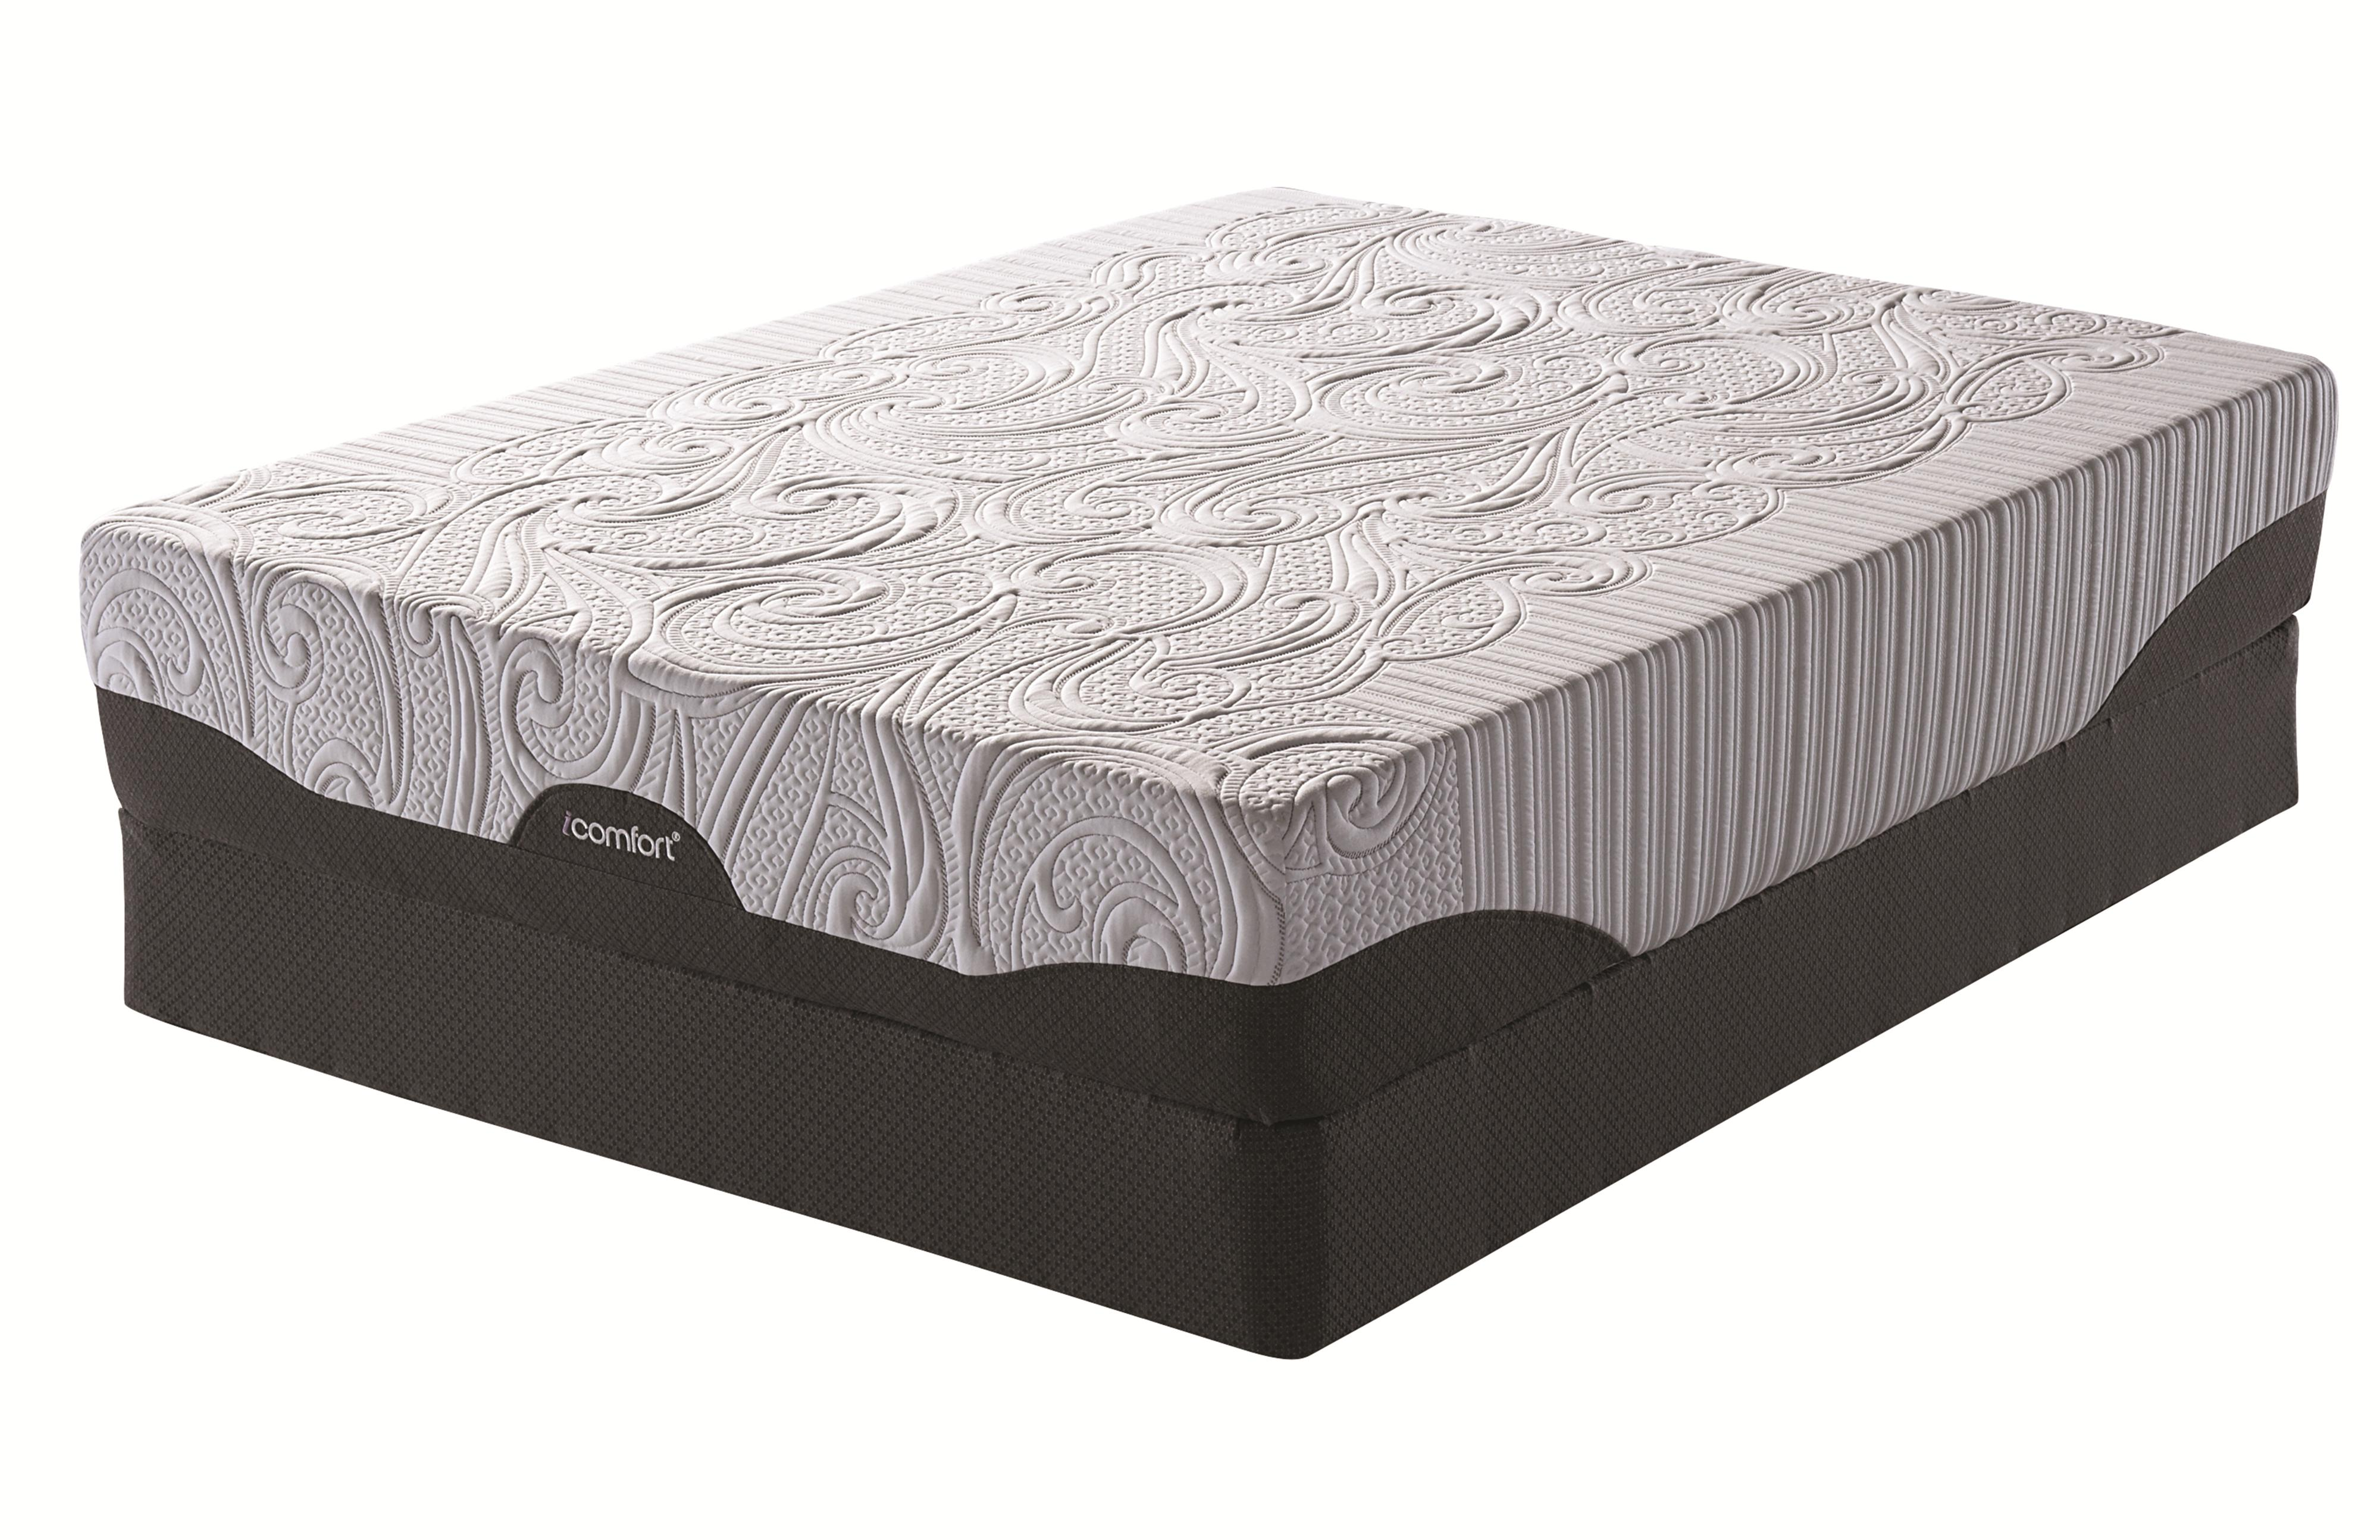 Serta iComfort® Savant EverFeel™ Plush Queen Mattress Set - Item Number: 823628Q+825099Q